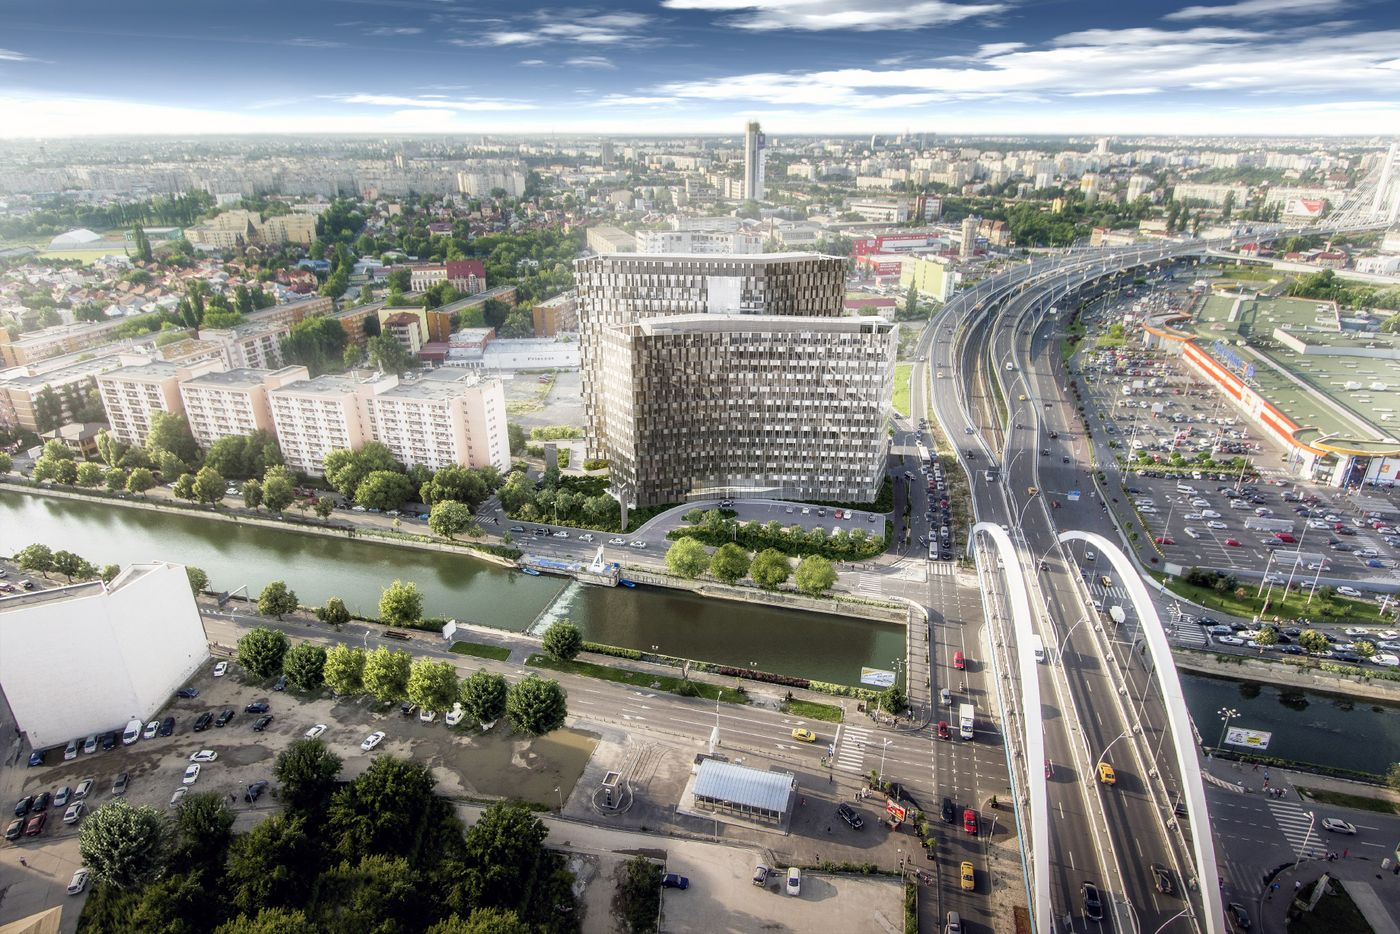 Rendering: ultra-modern designed office building located next to a river and overtowering the city of Bucharest